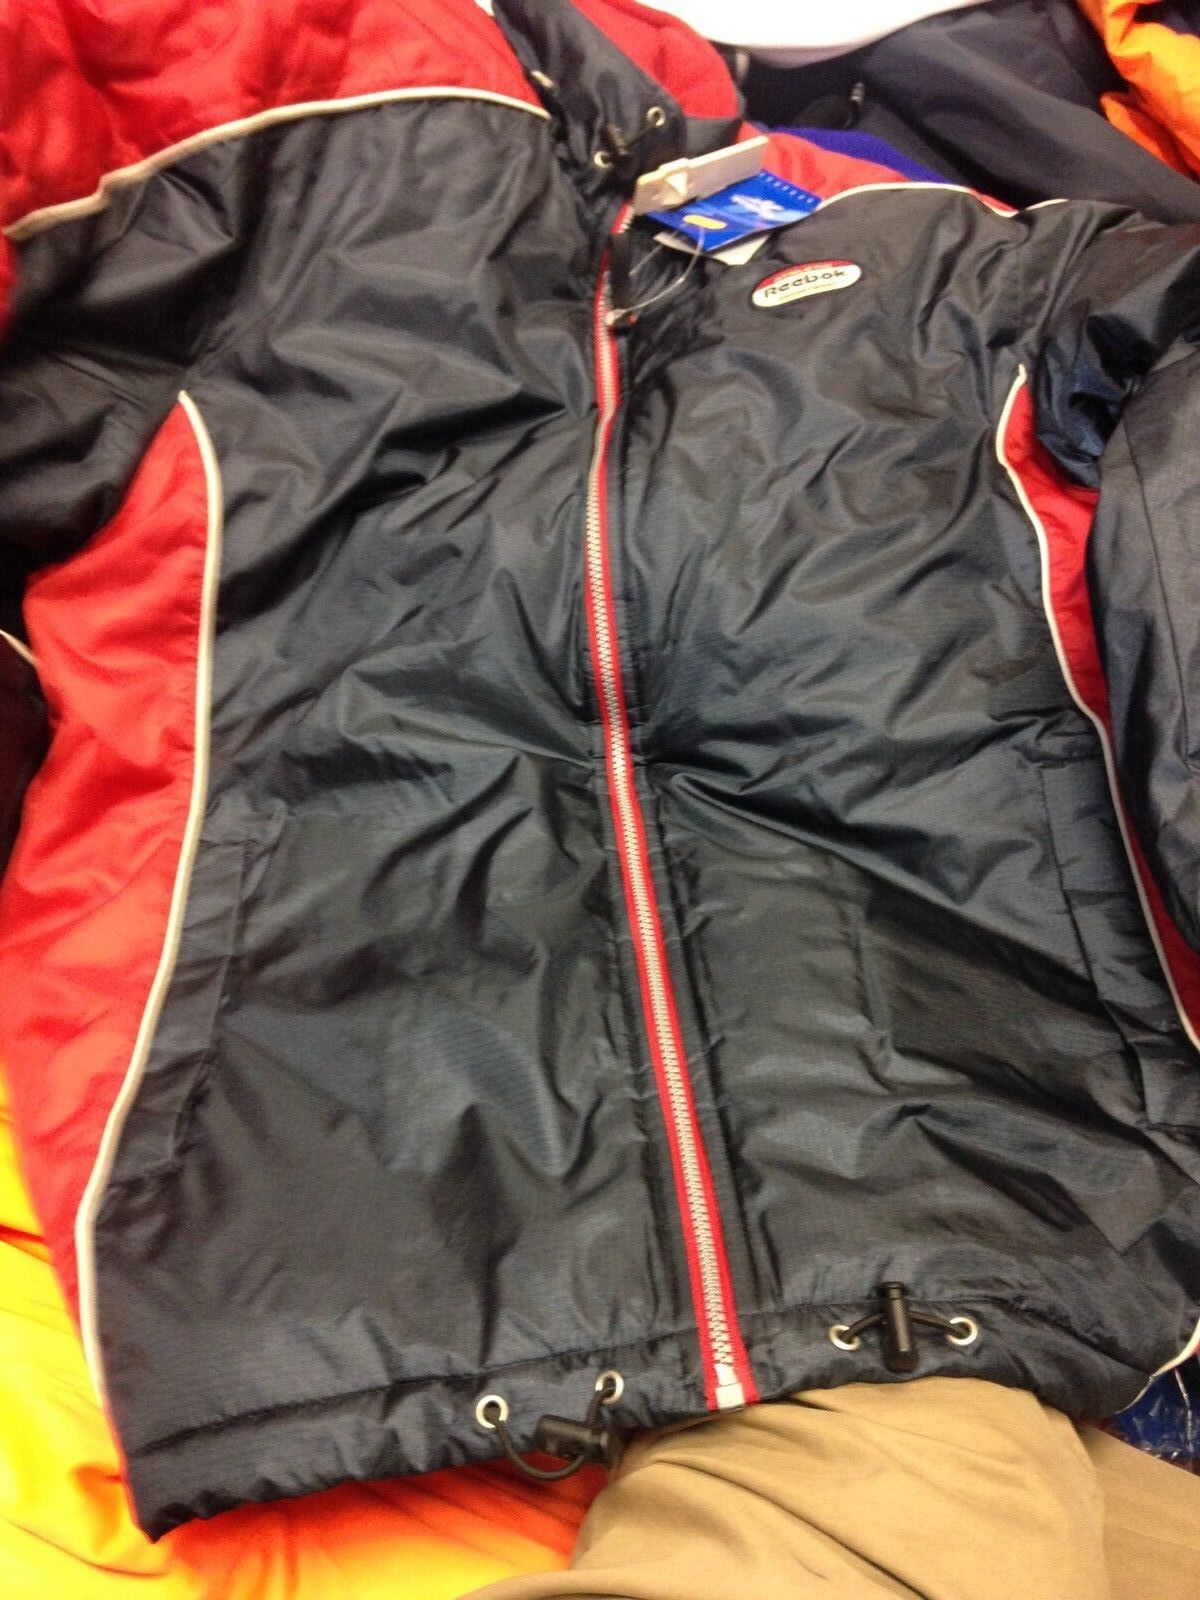 REEBOK COATS ATHELECTIC DEPARTMENT IN 36 38 OR 40 INCH LONG COAT AT  NAVY RED